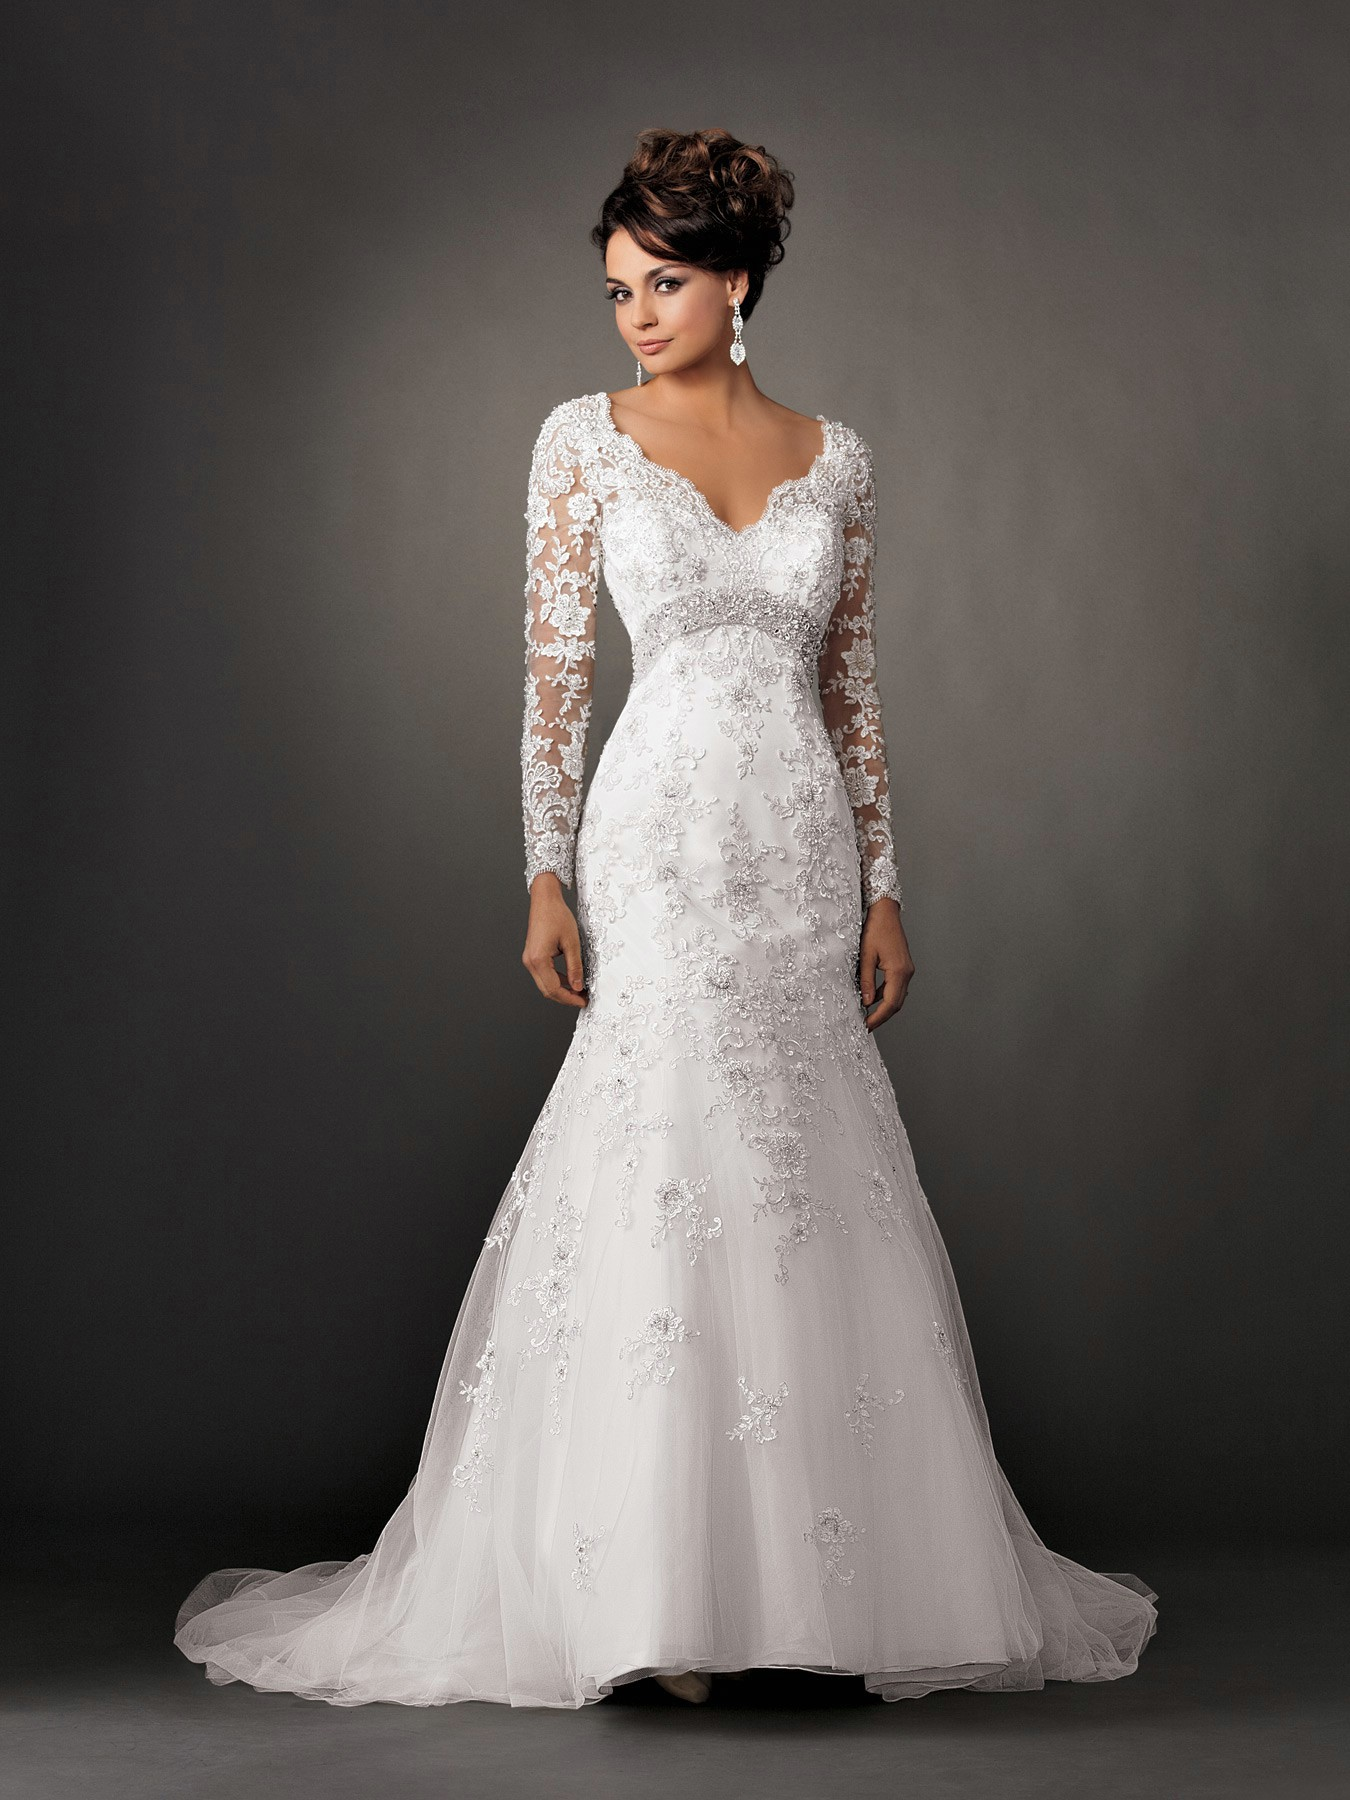 Wedding Dress Images Lace : The elegance of fall lace wedding dresses with sleeves